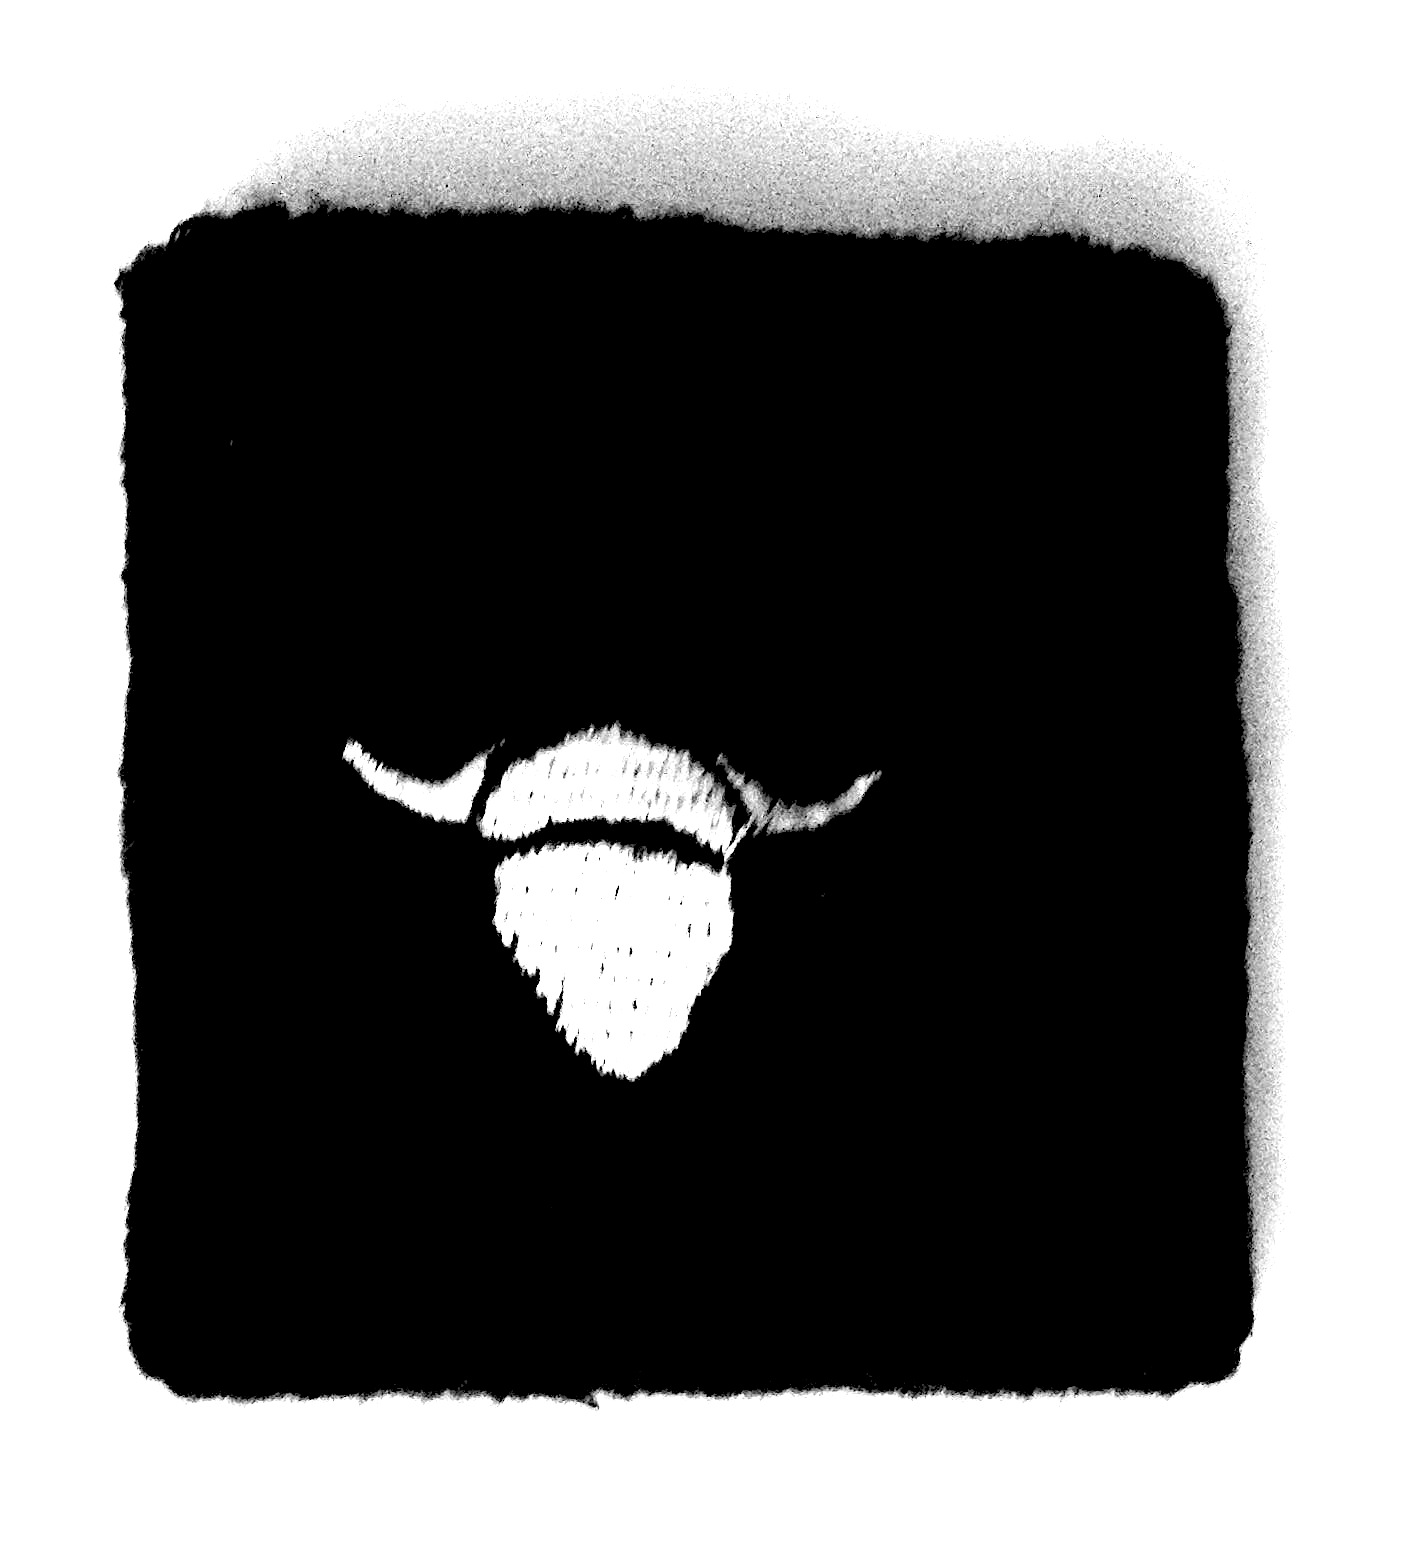 unique_jet_black_sweatband_white_embroidered_horned_bull_wrist_and_sweatbands_2.jpg